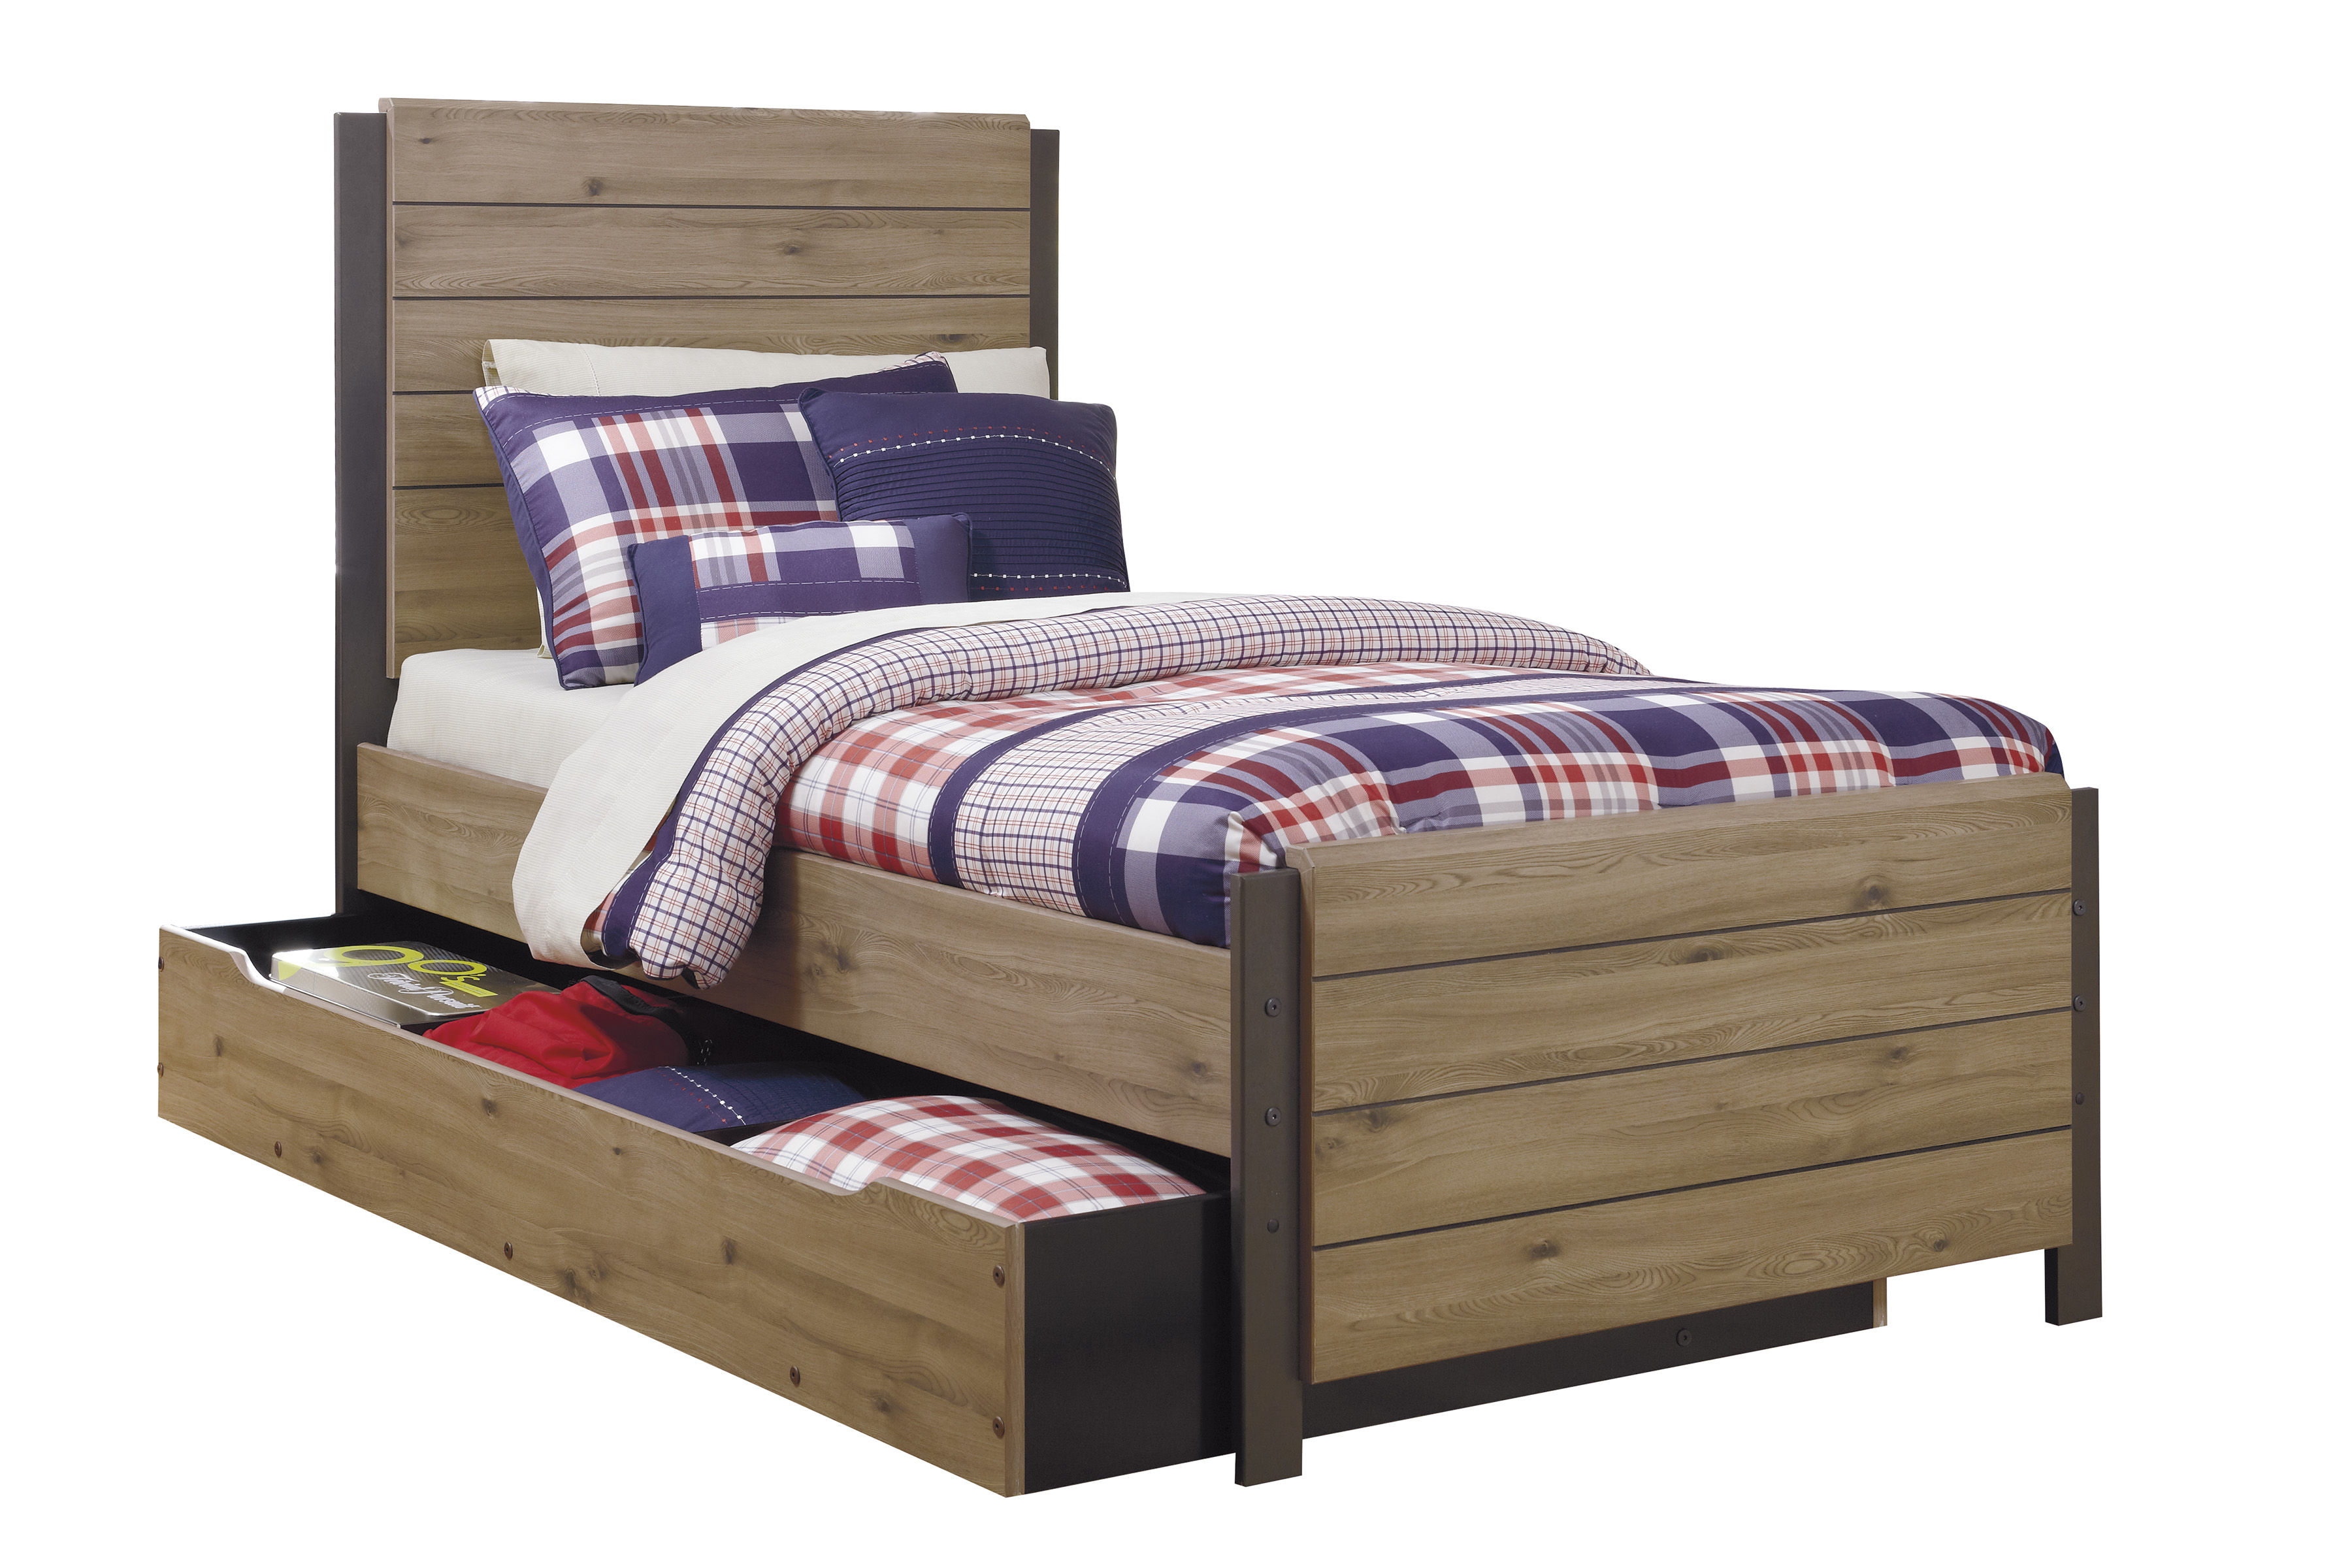 mad b products over rune furniture assembly ft bed bunk number trundle madison s twin lang full item